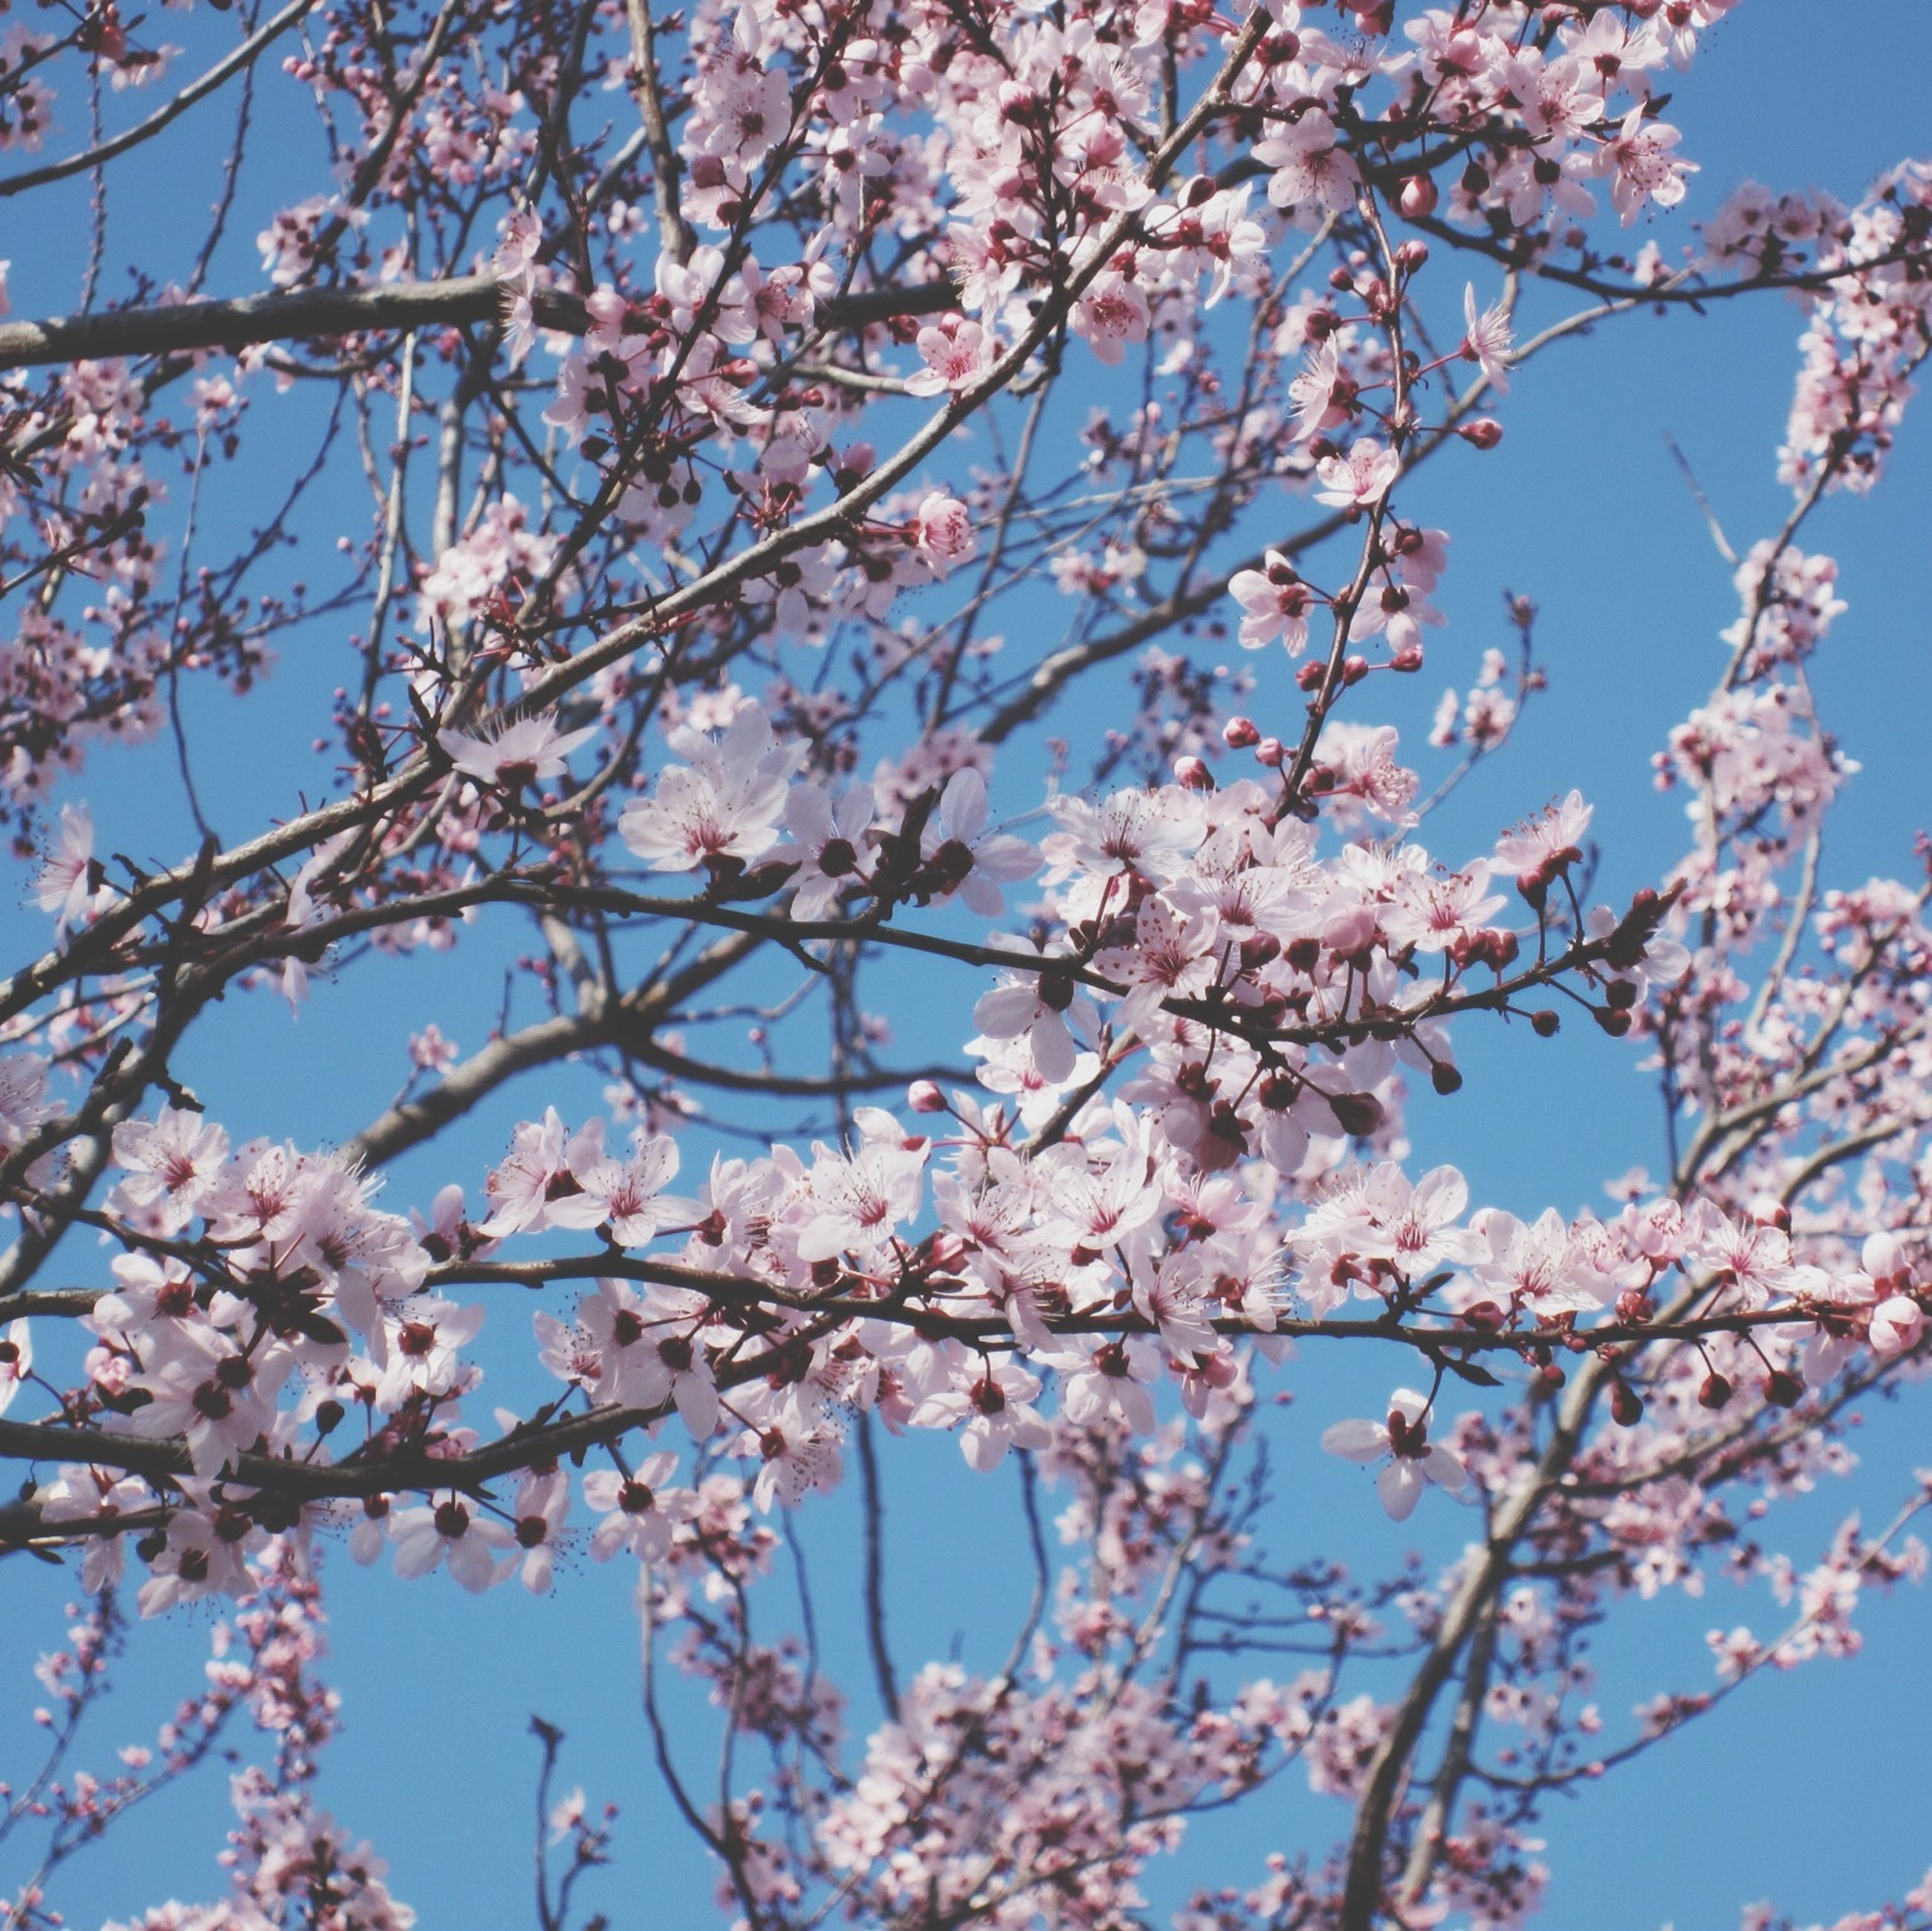 flower, branch, freshness, tree, cherry blossom, low angle view, blossom, fragility, growth, cherry tree, beauty in nature, nature, springtime, fruit tree, in bloom, blooming, clear sky, pink color, orchard, sky